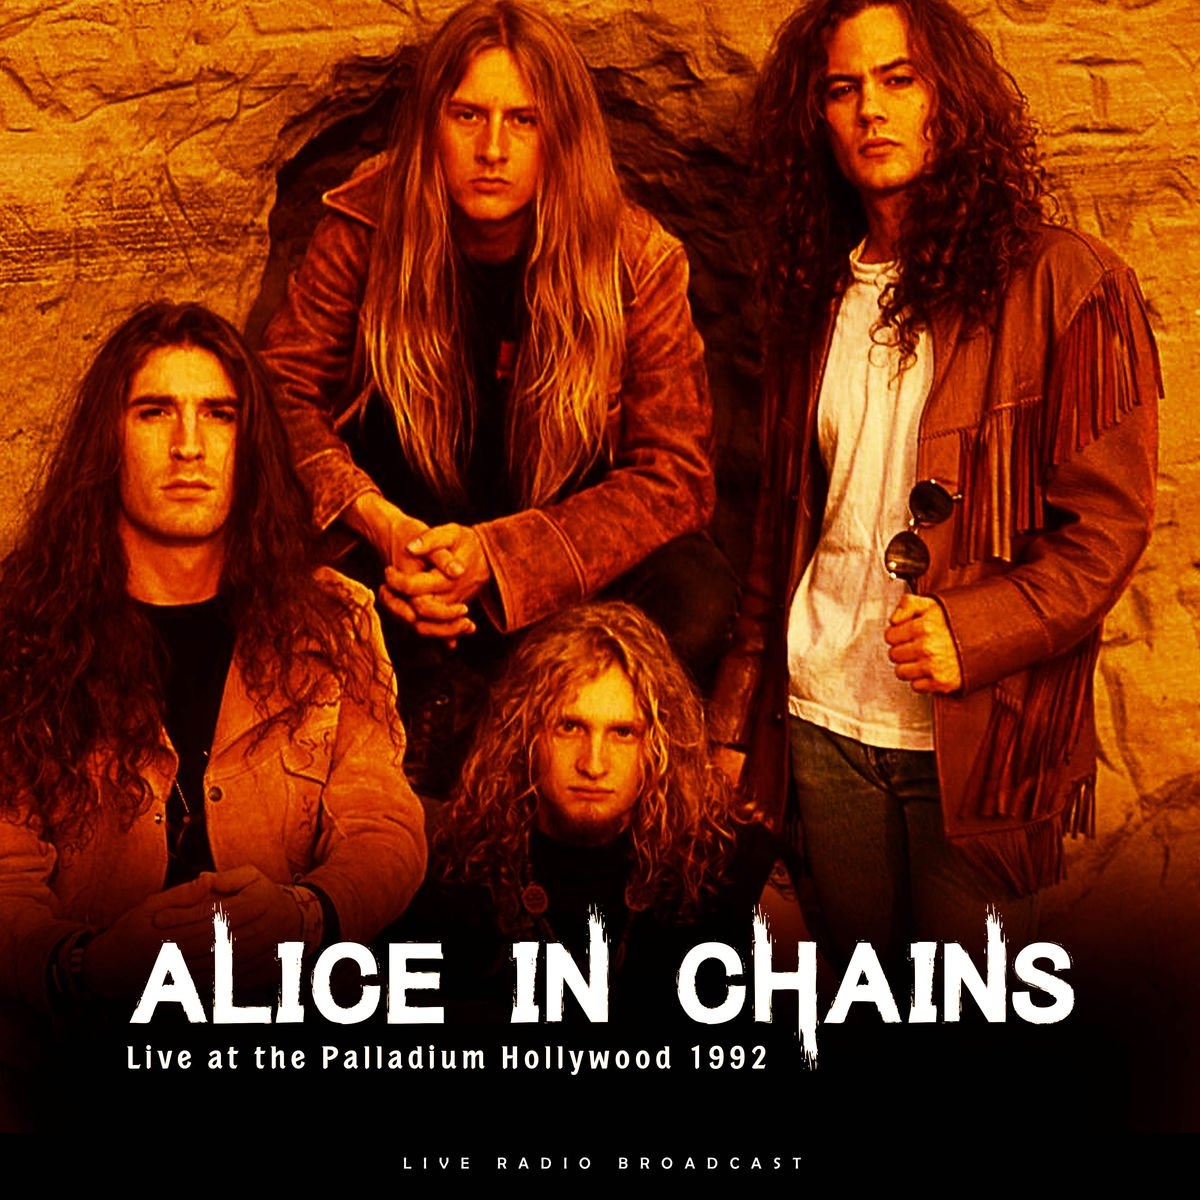 Alice In Chains - Live At The Palladium Hollywood 1992 (2019 Silver Pressed Promo CD)*